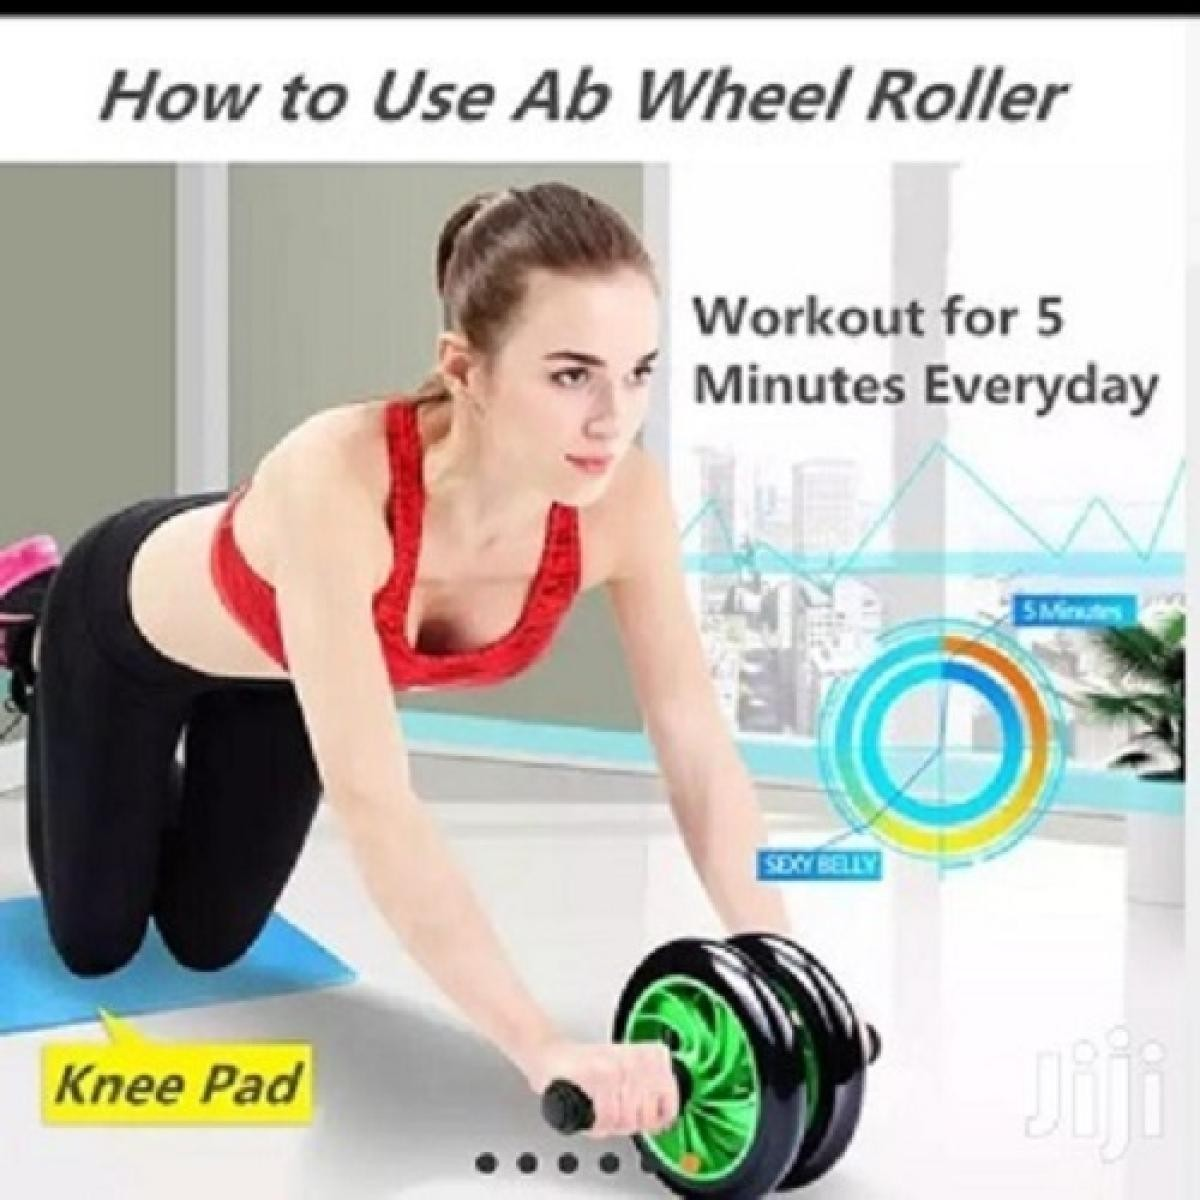 Dual Ab Wheel Roller Abdominal Exercise Abs with Free Knee Mat Pad Training Workout